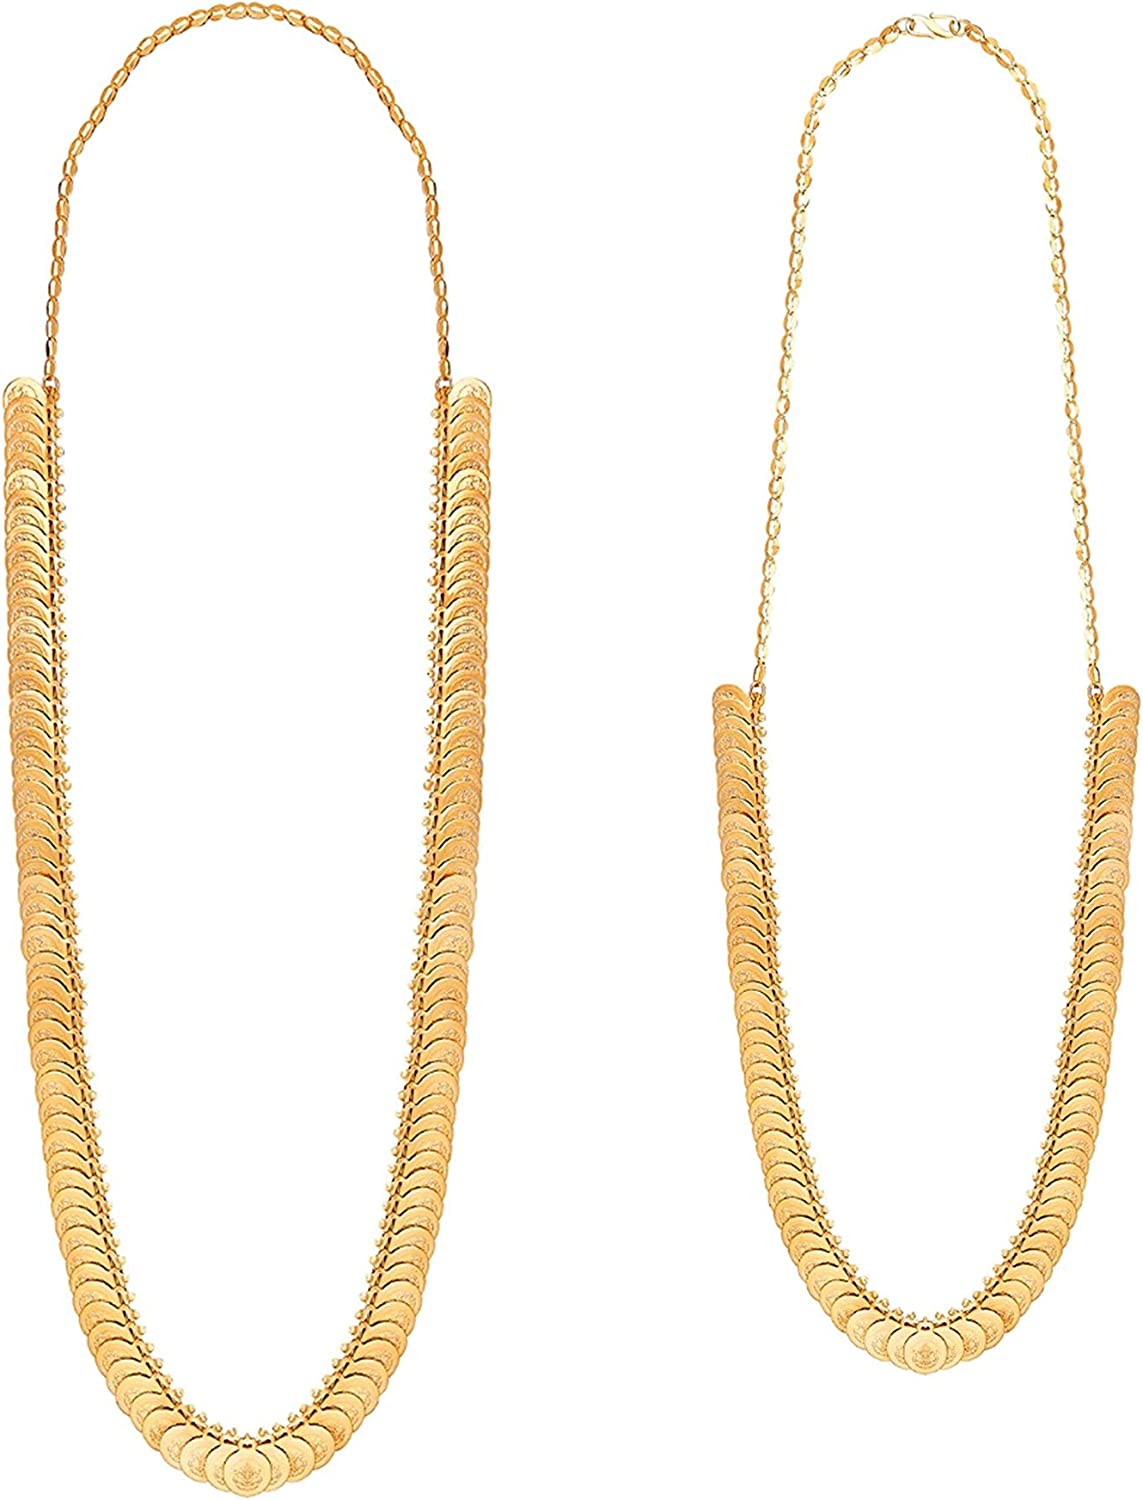 Bodha Tradtional Indian Temple Necklace Jewelry Gold Plated Laxmi Coin Combo Chain Necklace for Women (SJNC_204)